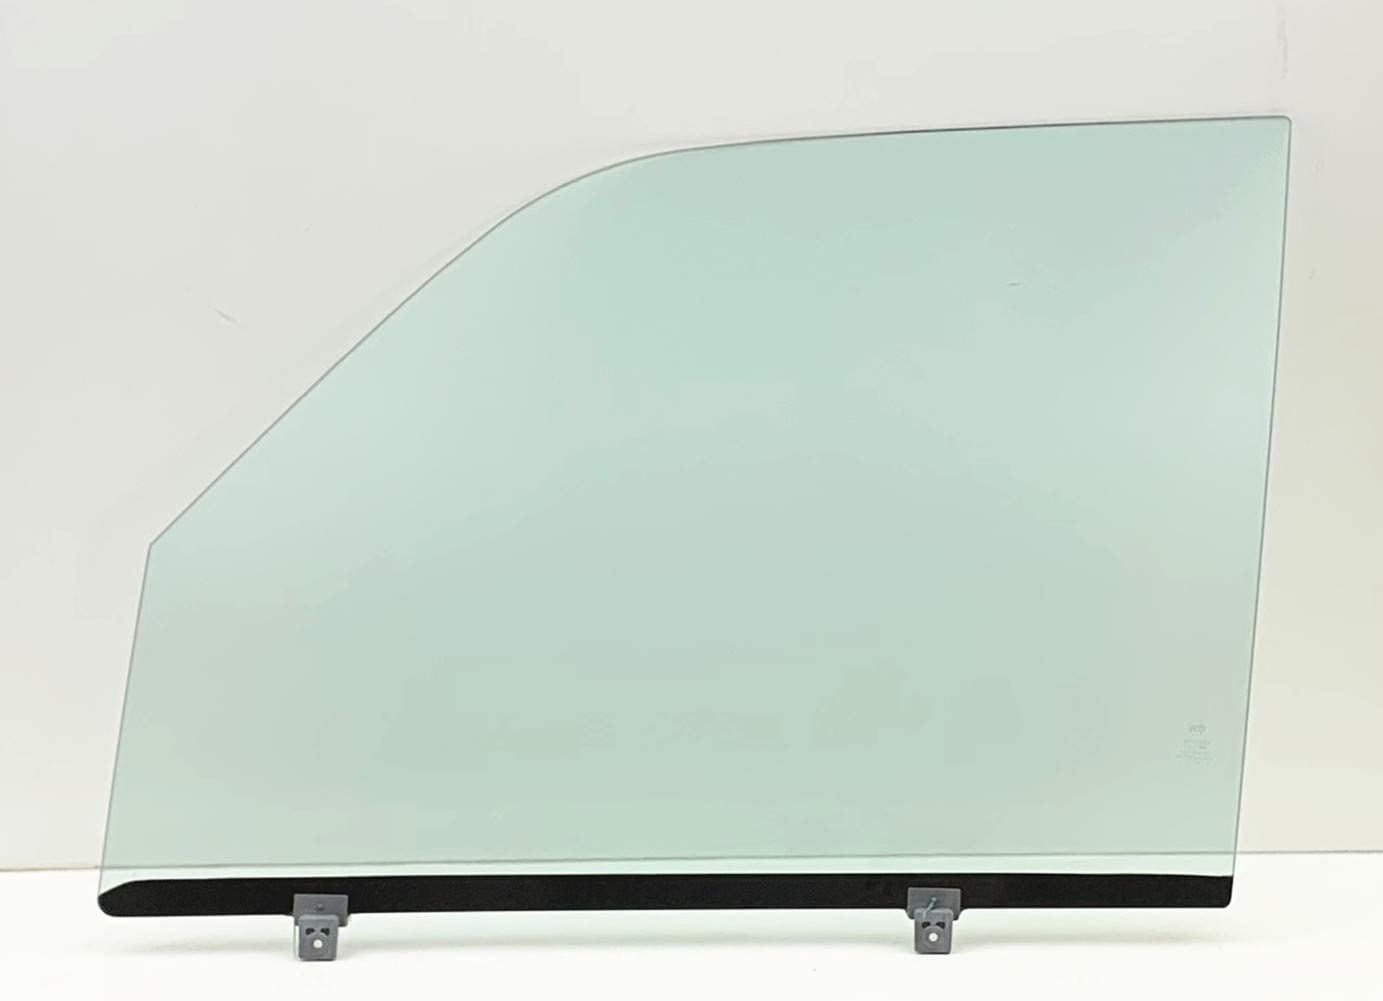 Compatible with Acura SLX 1996-1999 NAGD Driver Left Side Front Door Window Compatible with Isuzu Trooper 1992-2002